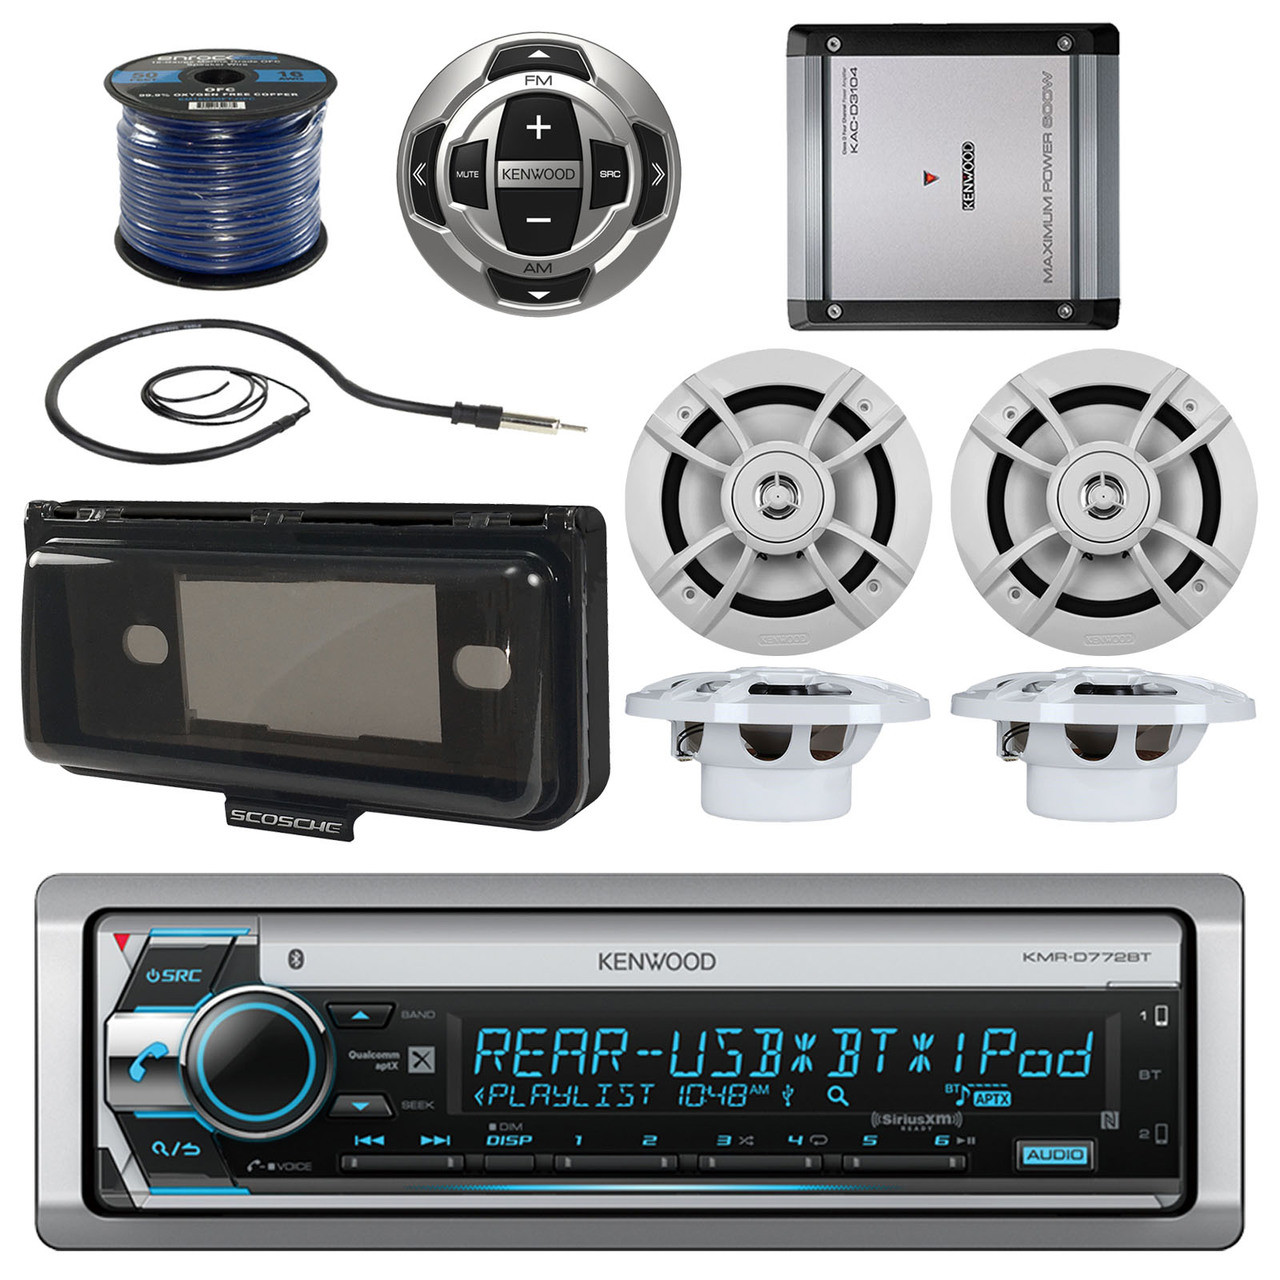 medium resolution of kenwood usb cd bluetooth boat radio remote 6 5 speakers wires amp antenna cover mbnpn498 road entertainment